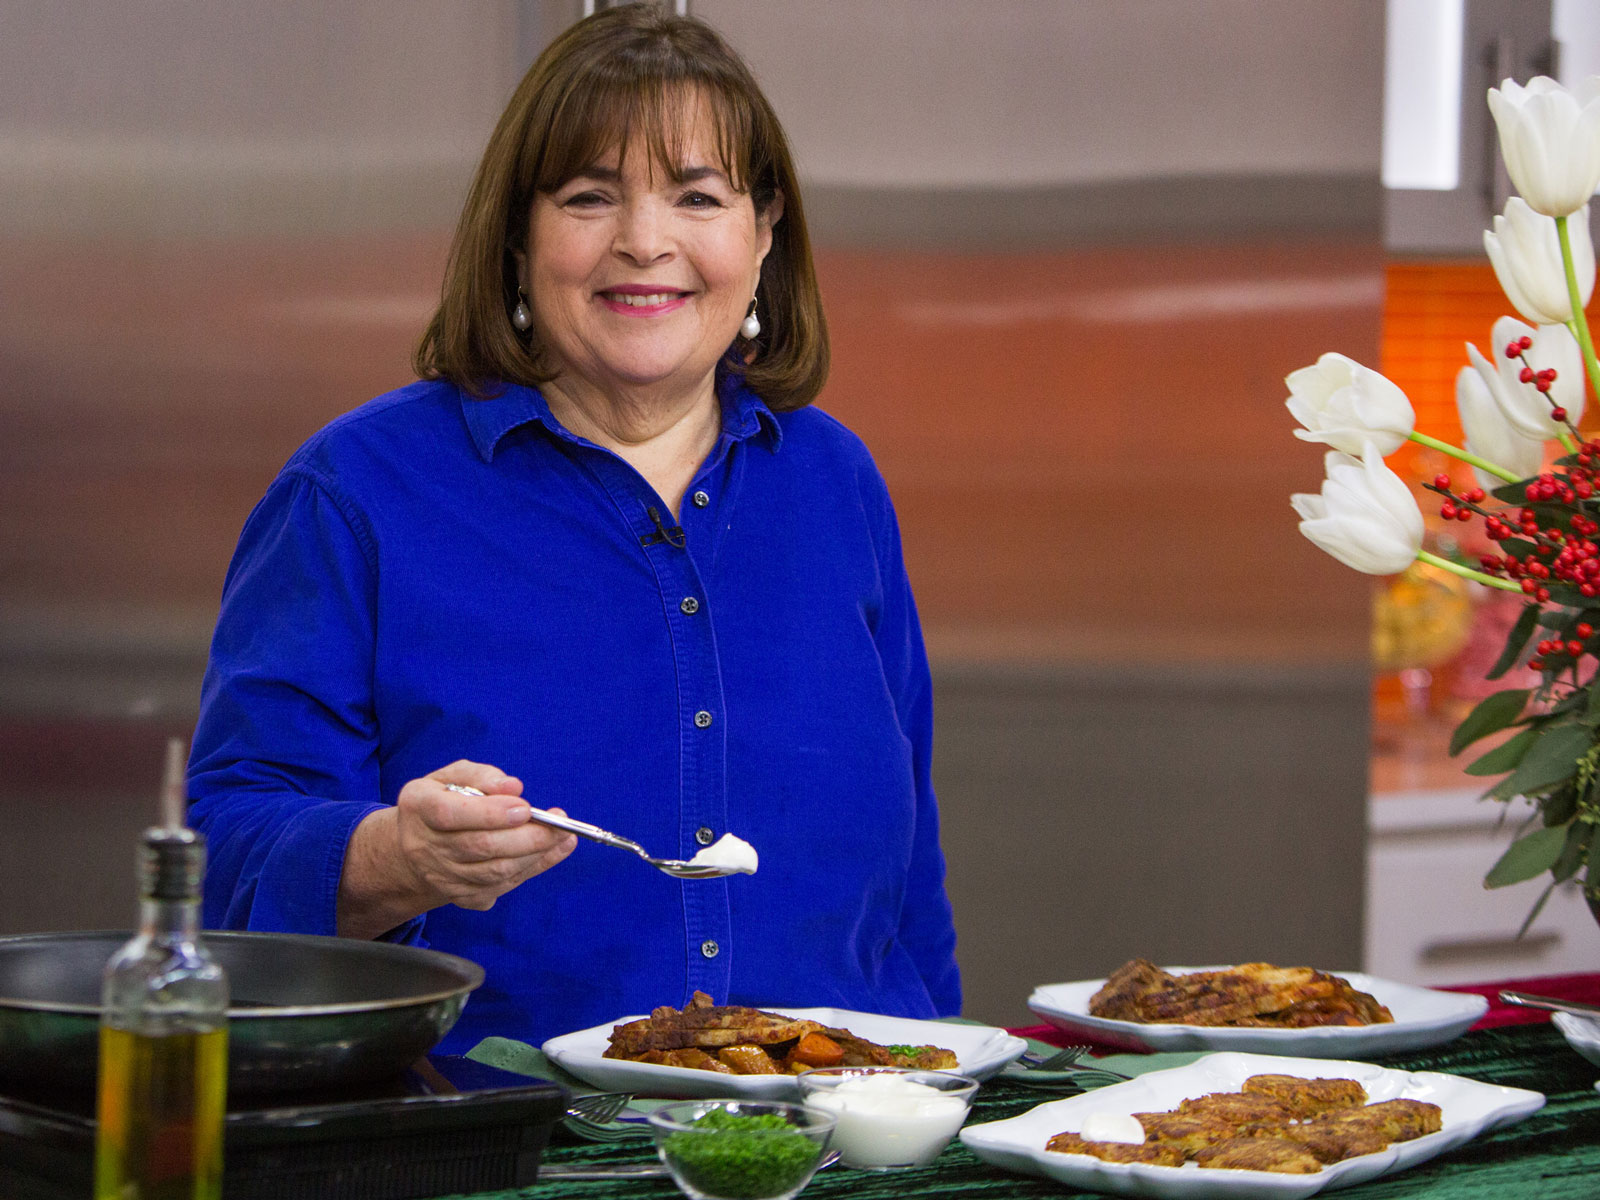 Ina Garten's Shania-Filled Cooking Playlist Totally Slaps